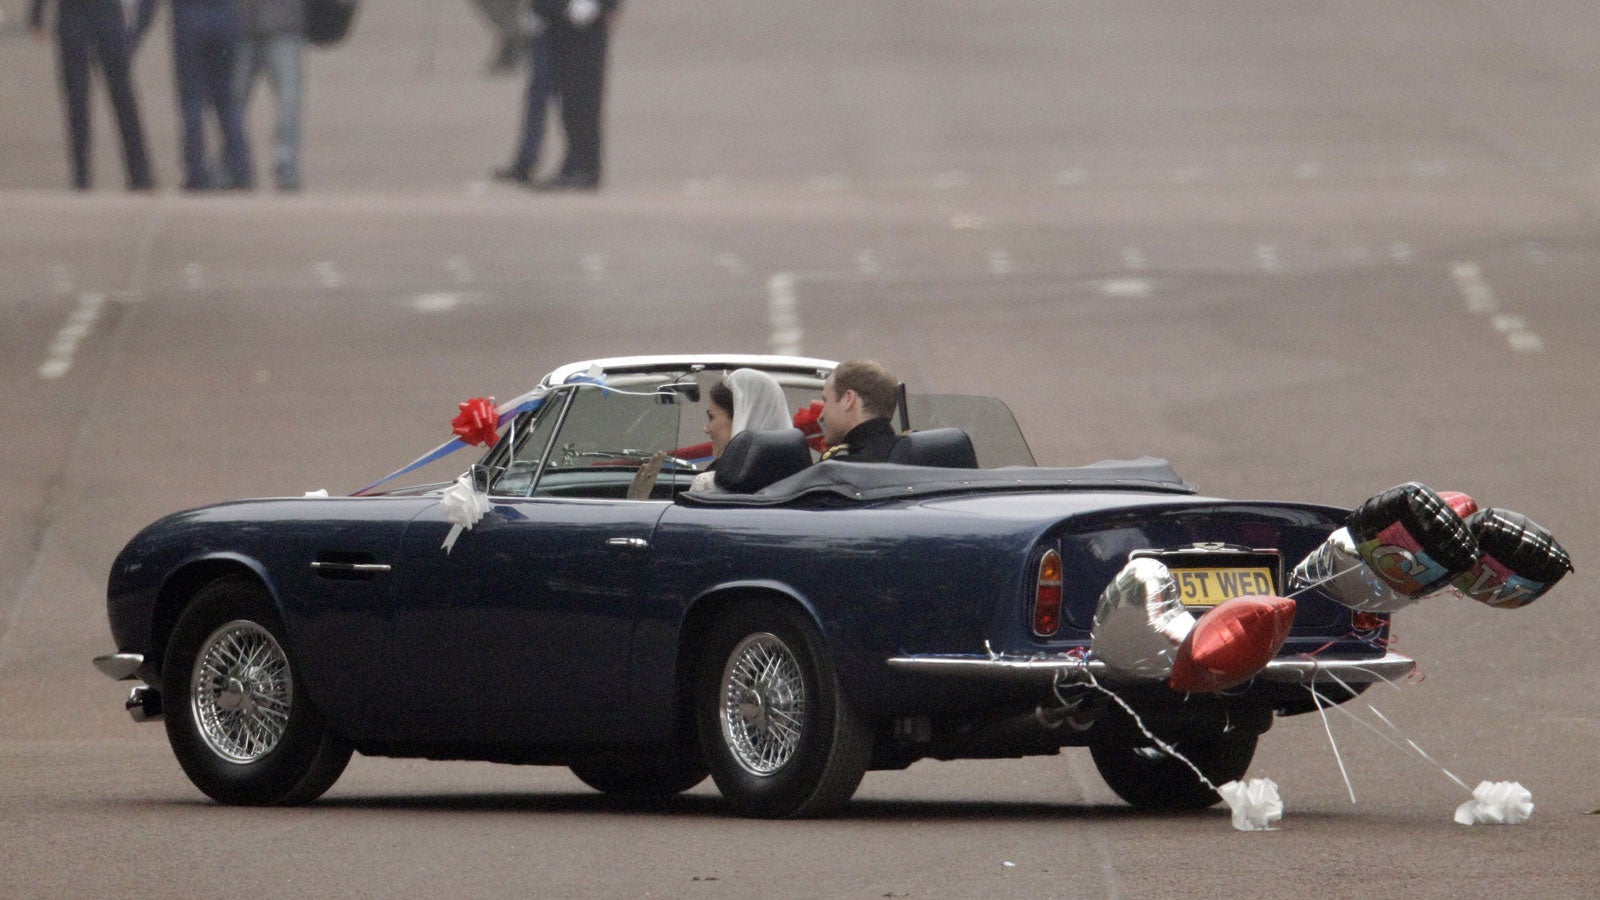 Prince William S Awesome Old Aston